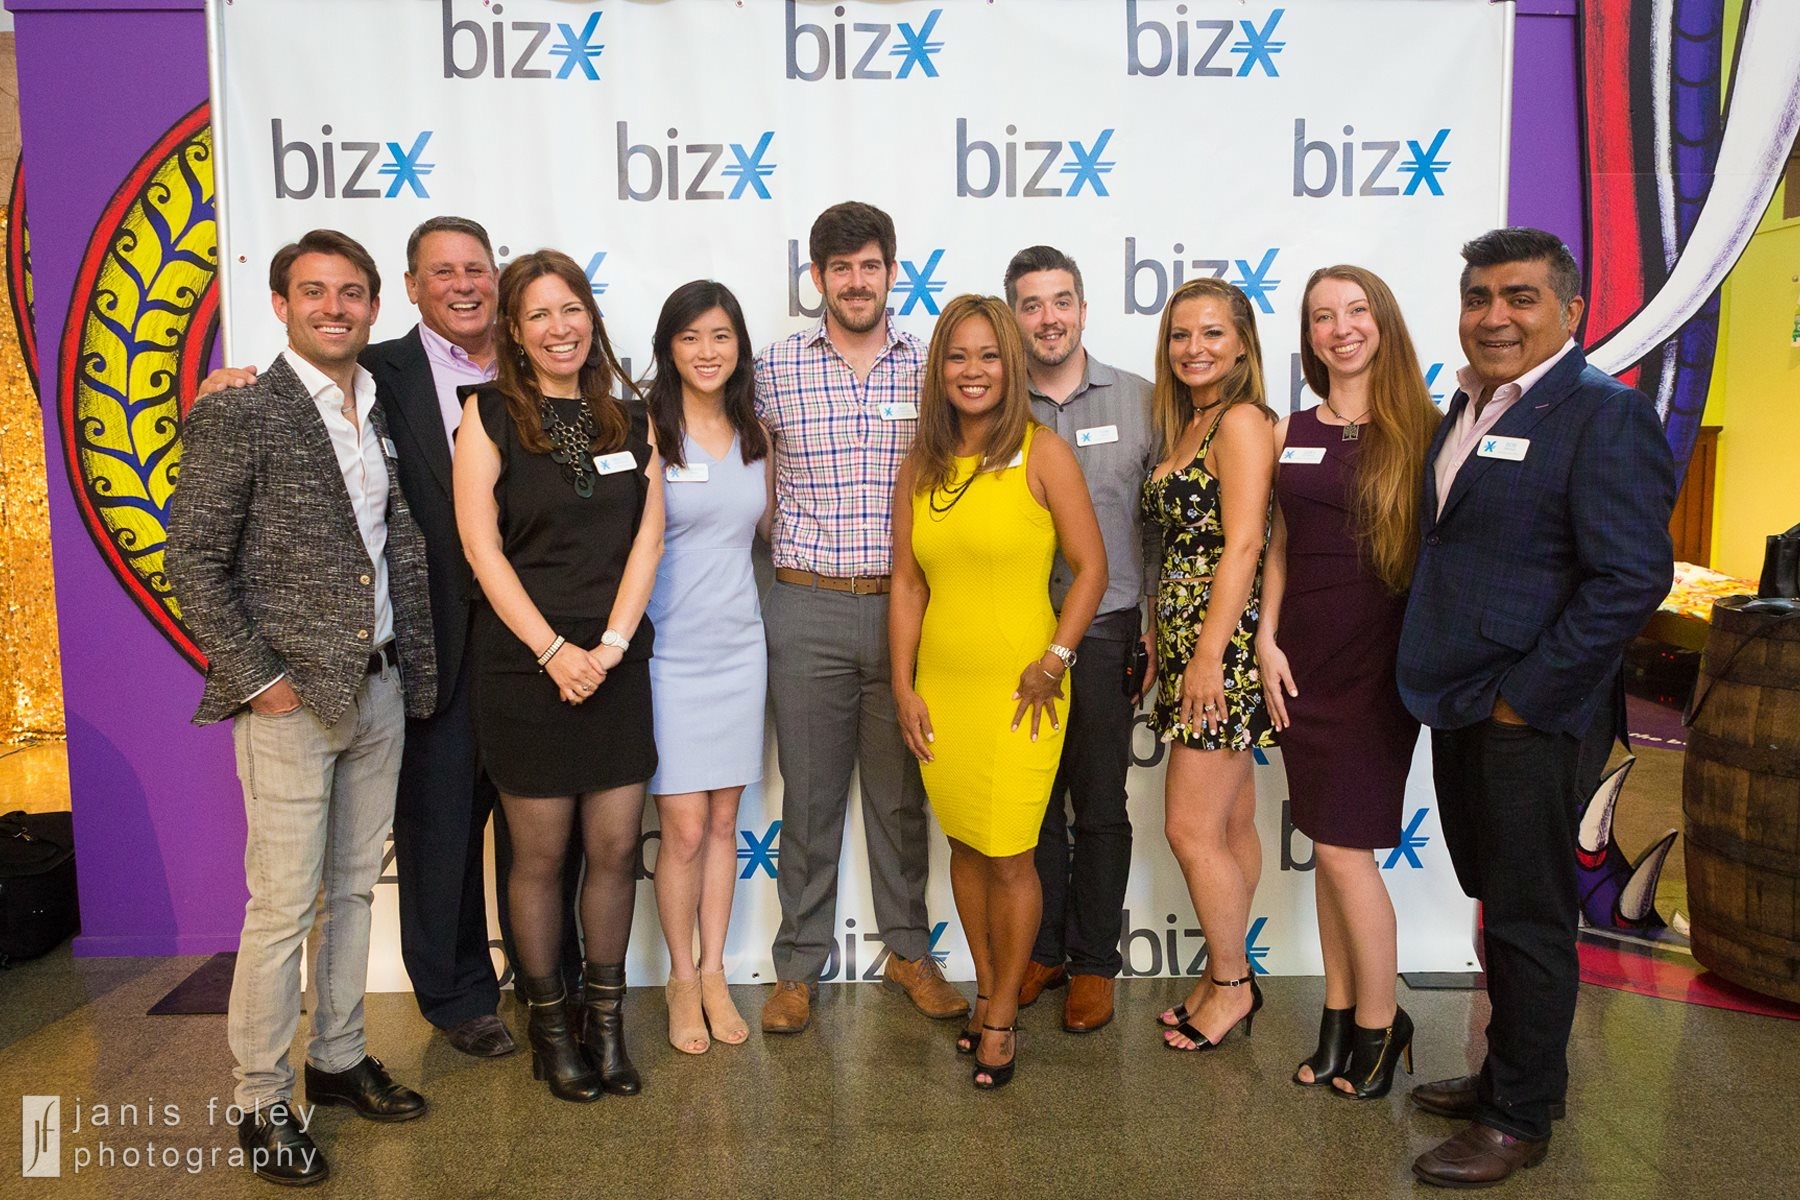 Members of the BizX San Diego, San Francisco, and Seattle teams gather for the San Diego community launch event.